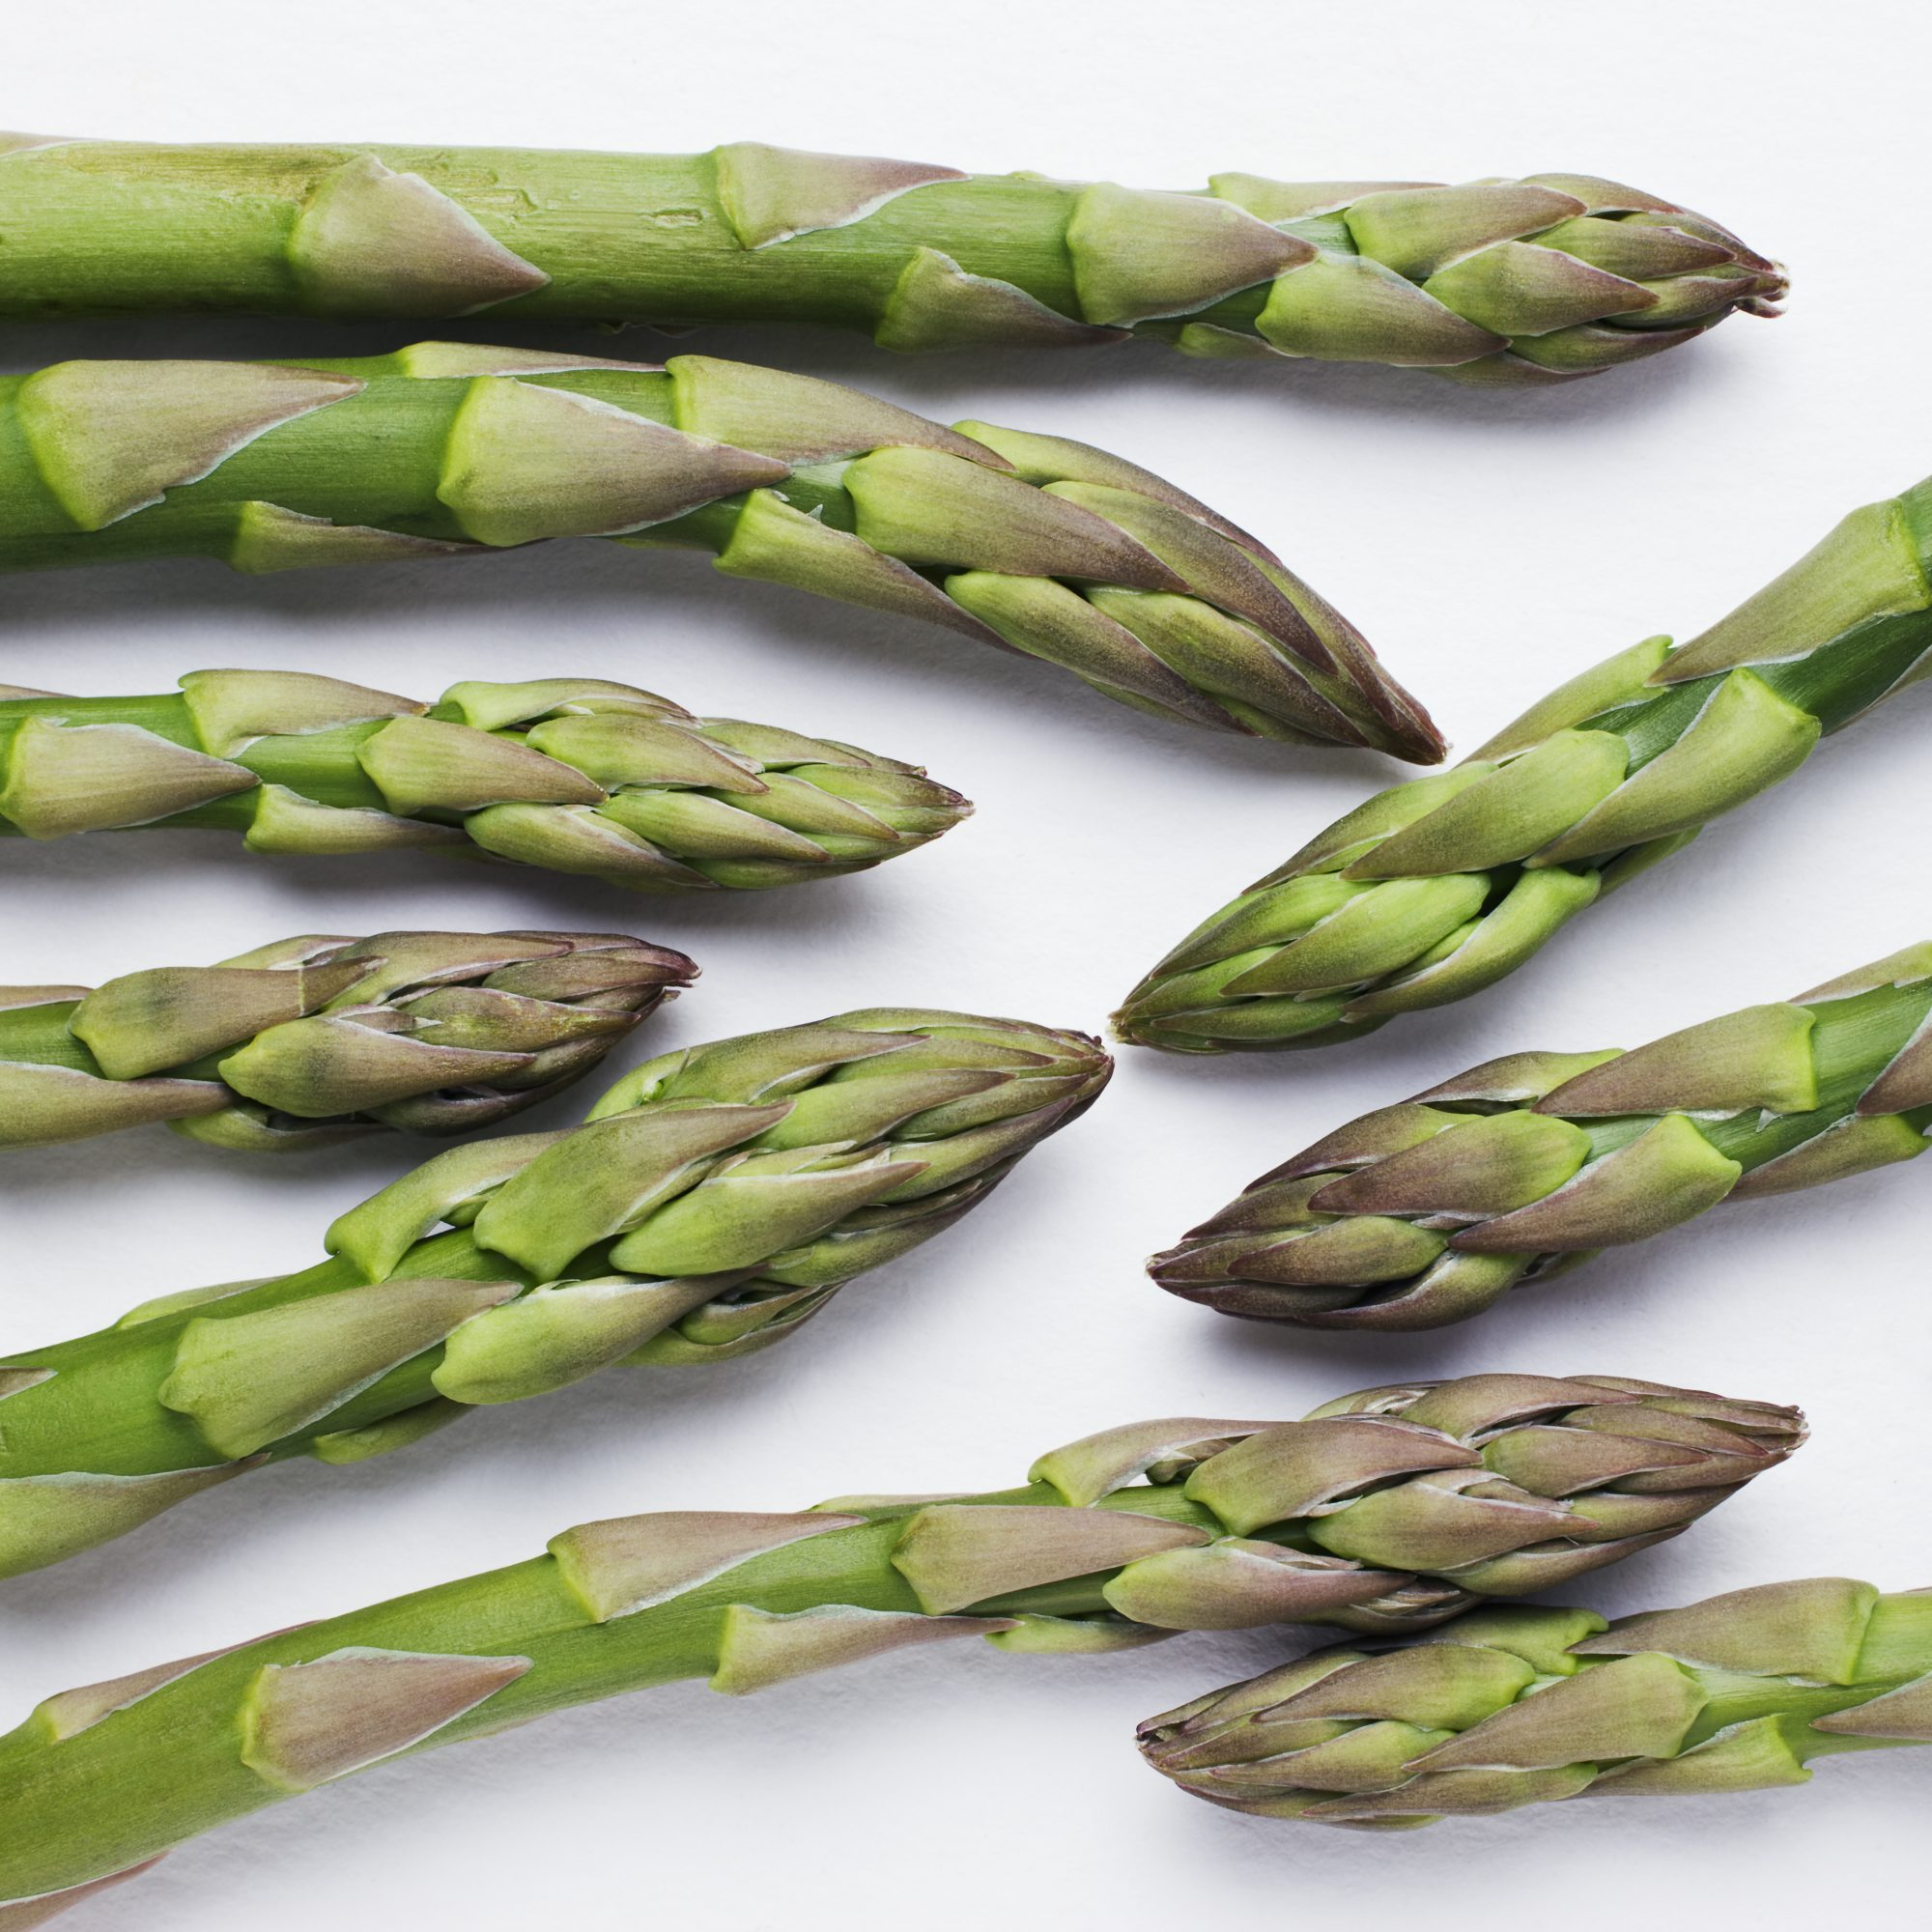 7 Chefs on Their Favorite Way to Cook Asparagus